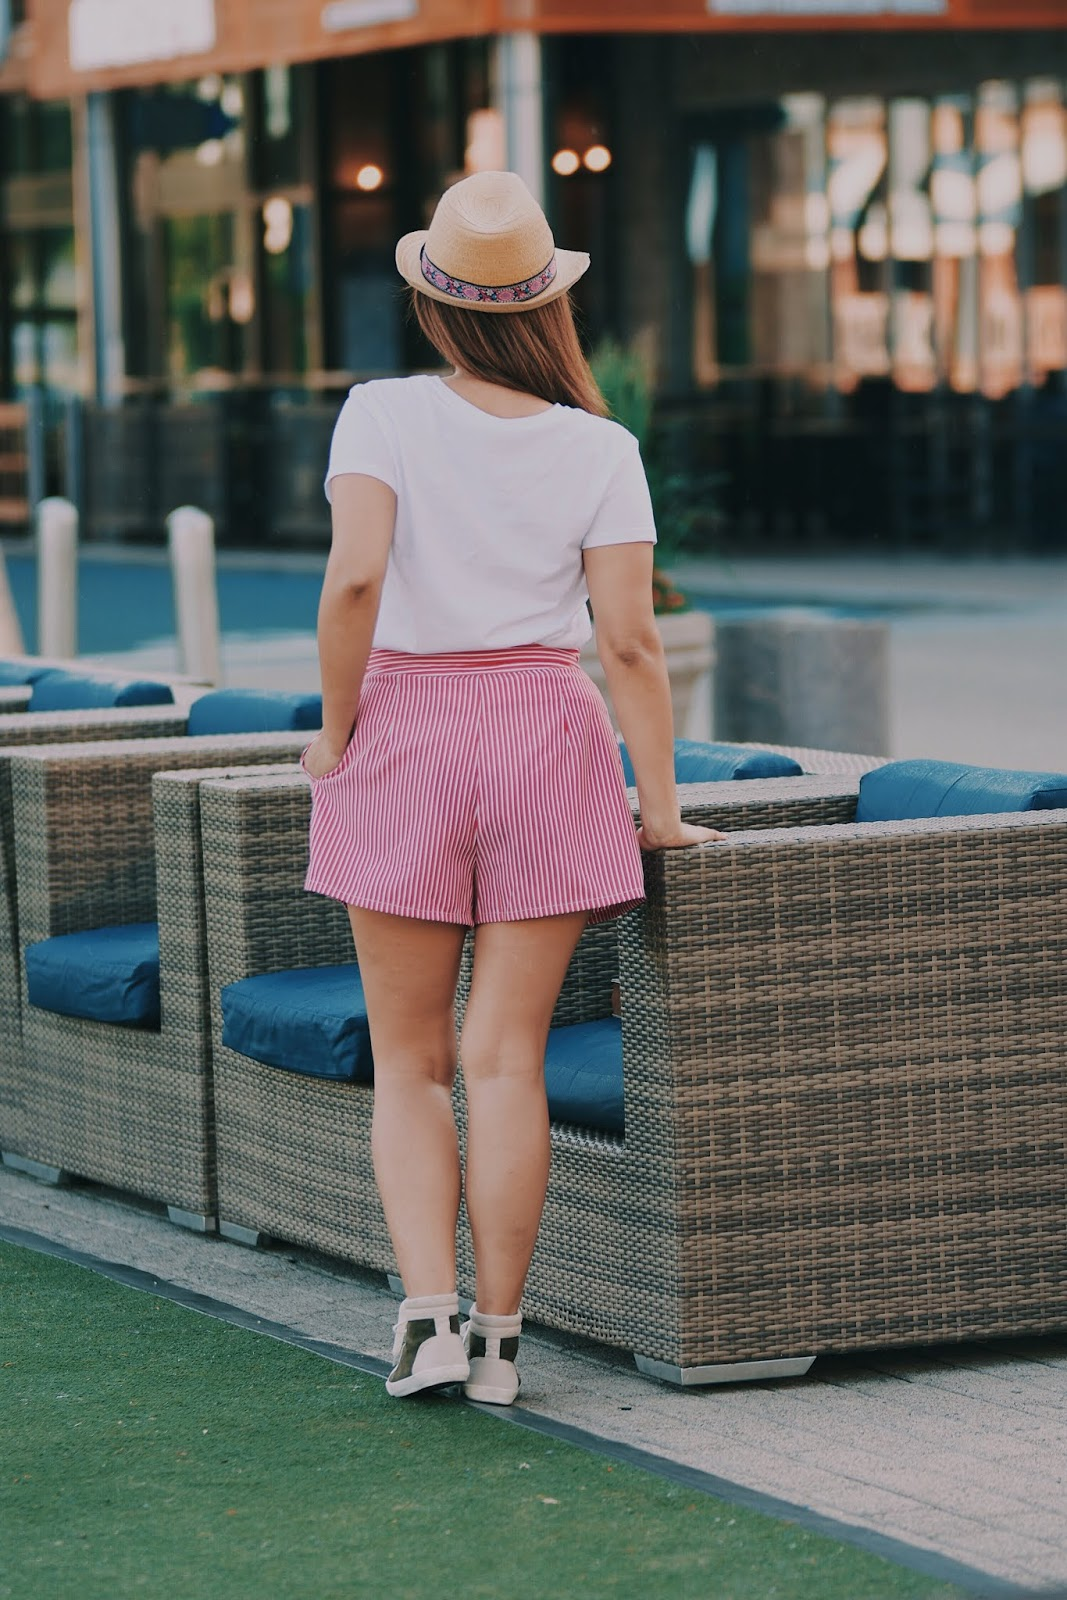 Good Things Take Time by Mari Estilo-shein-lookoftheday-travelblog-travelblogger-moda-verano-summer-fashionista-